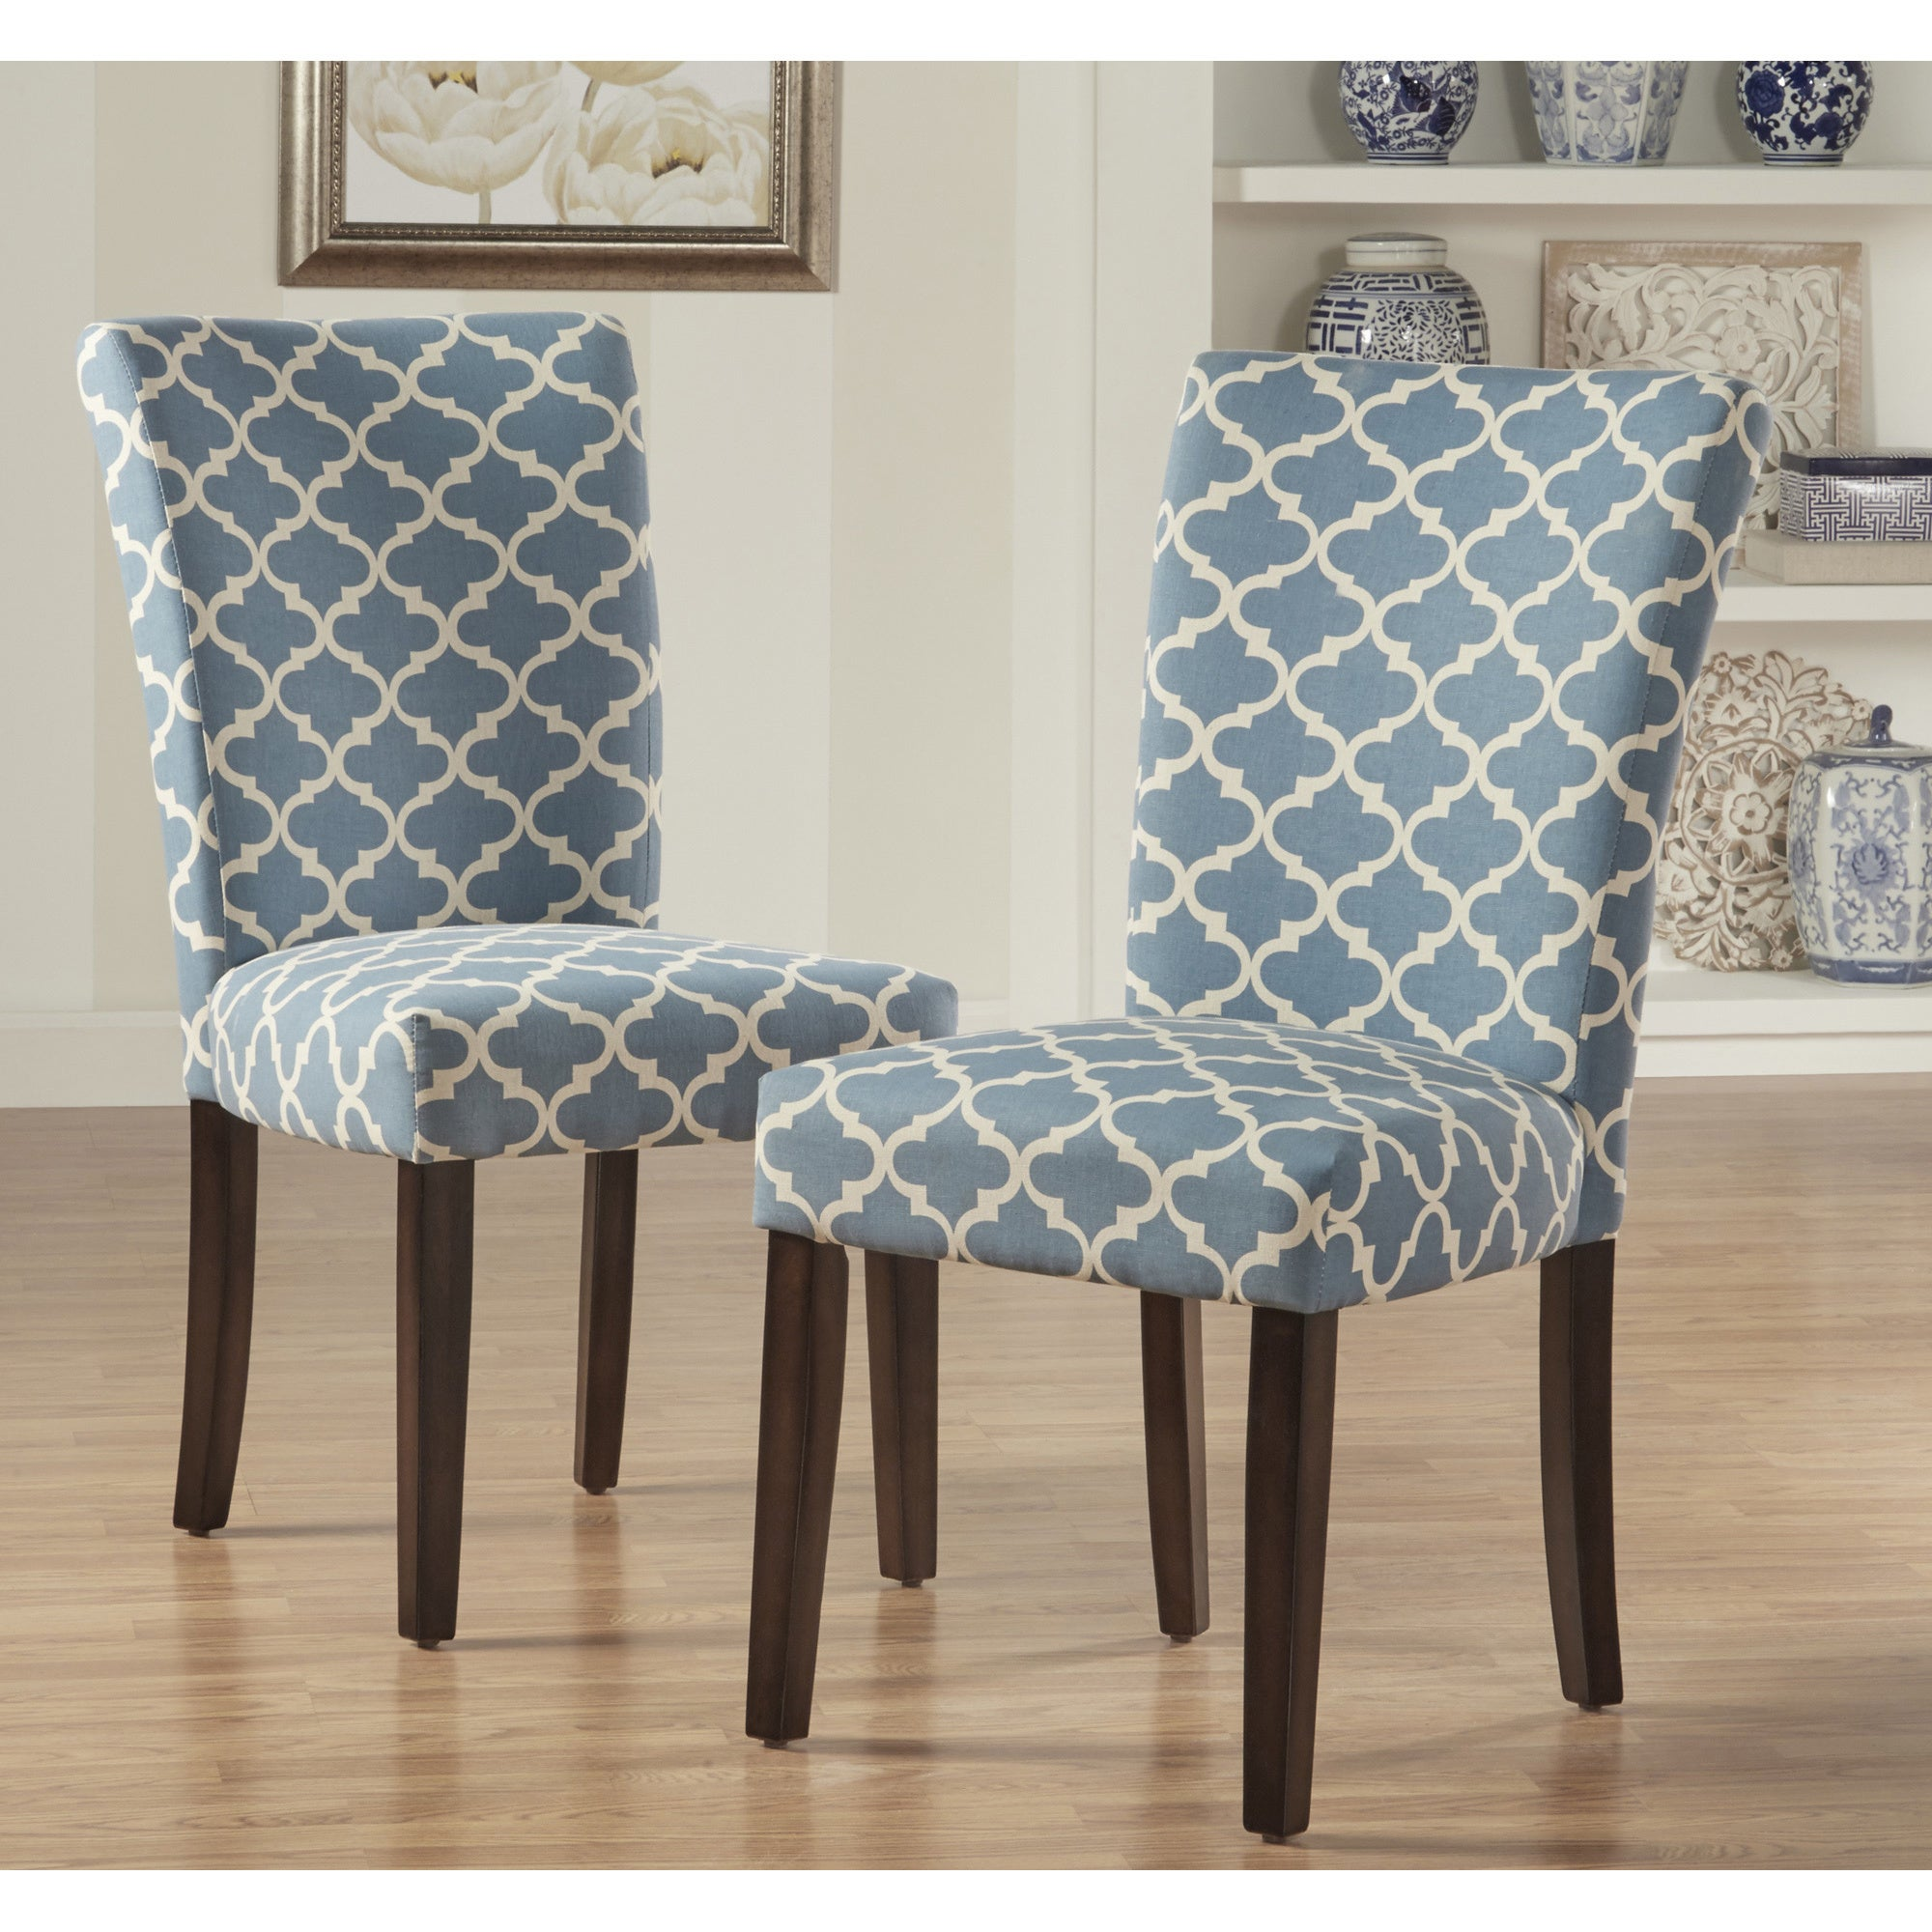 Shop Catherine Moroccan Pattern Fabric Parsons Dining Chair (Set of 2) by iNSPIRE Q Bold - On Sale - Free Shipping Today - Overstock.com - 10155882 & Shop Catherine Moroccan Pattern Fabric Parsons Dining Chair (Set of ...